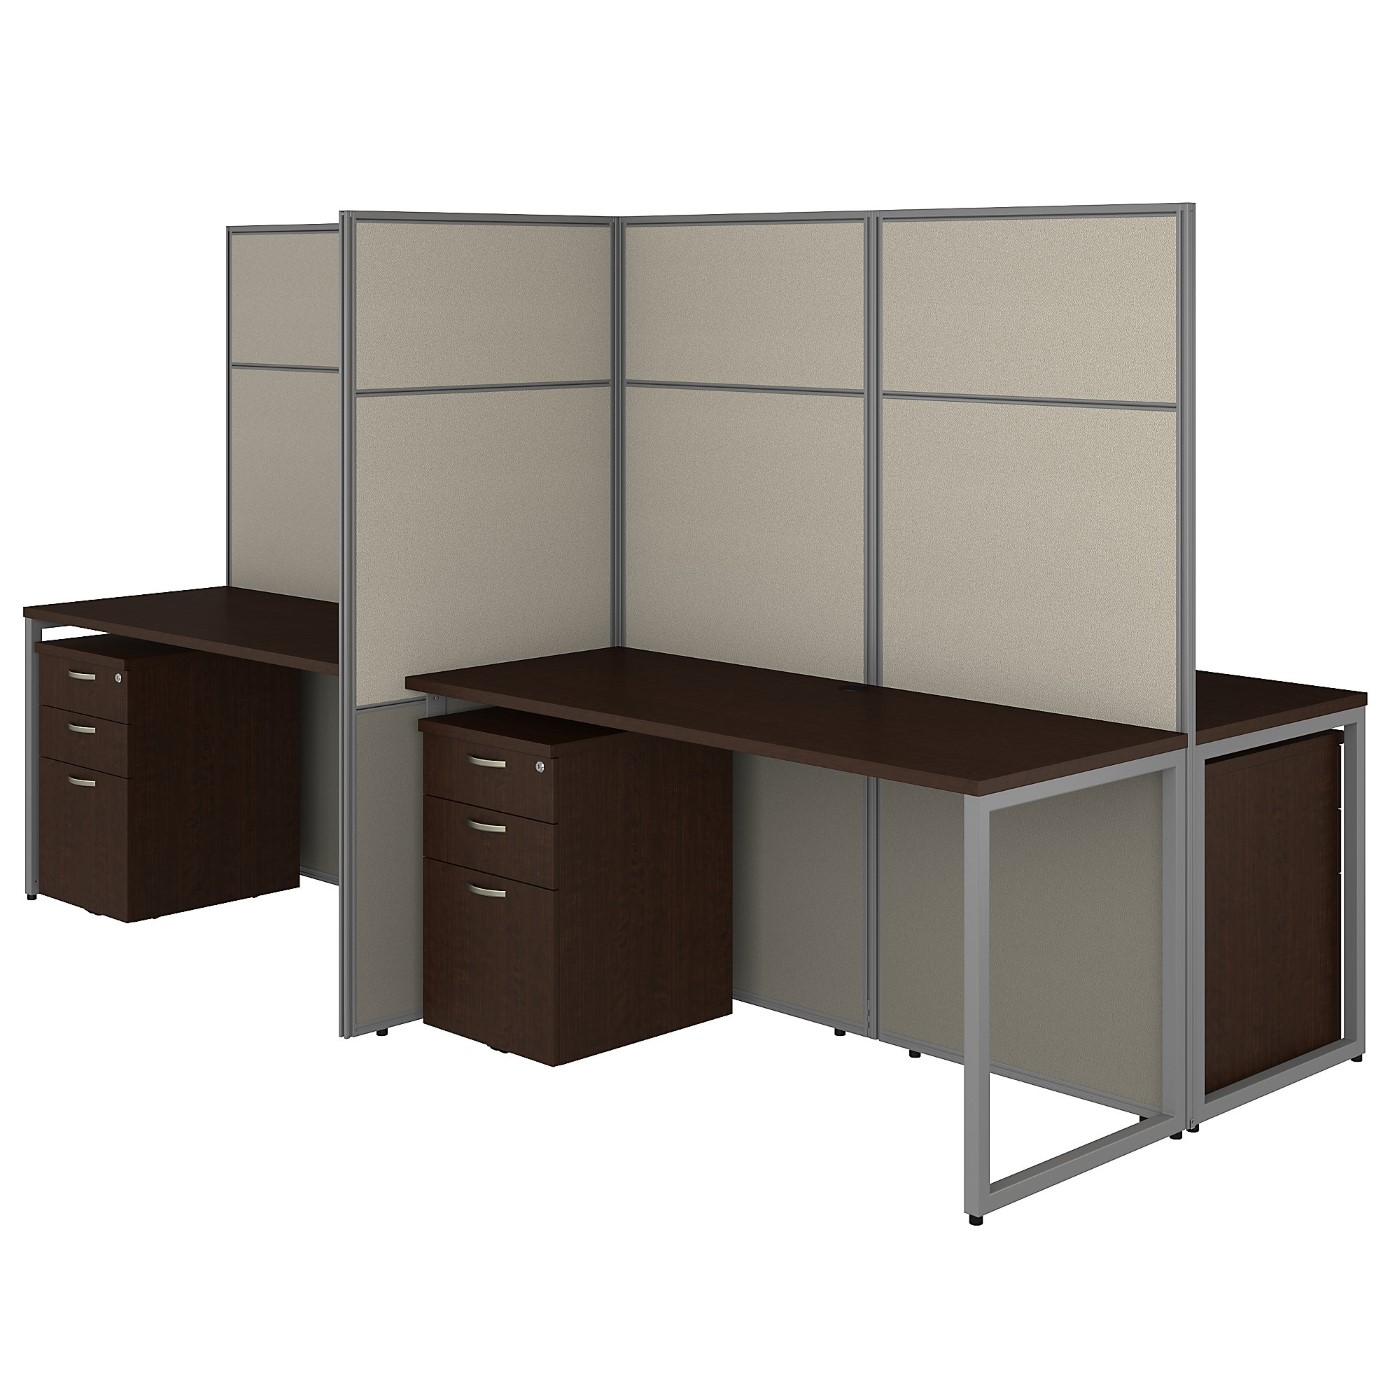 BUSH BUSINESS FURNITURE EASY OFFICE 60W 4 PERSON CUBICLE DESK WITH FILE CABINETS AND 66H PANELS. FREE SHIPPING 30H x 72L x 72W  VIDEO BELOW.  SALE DEDUCT 10% MORE ENTER '10percent' IN COUPON CODE BOX WHILE CHECKING OUT. ENDS 5-31-20.